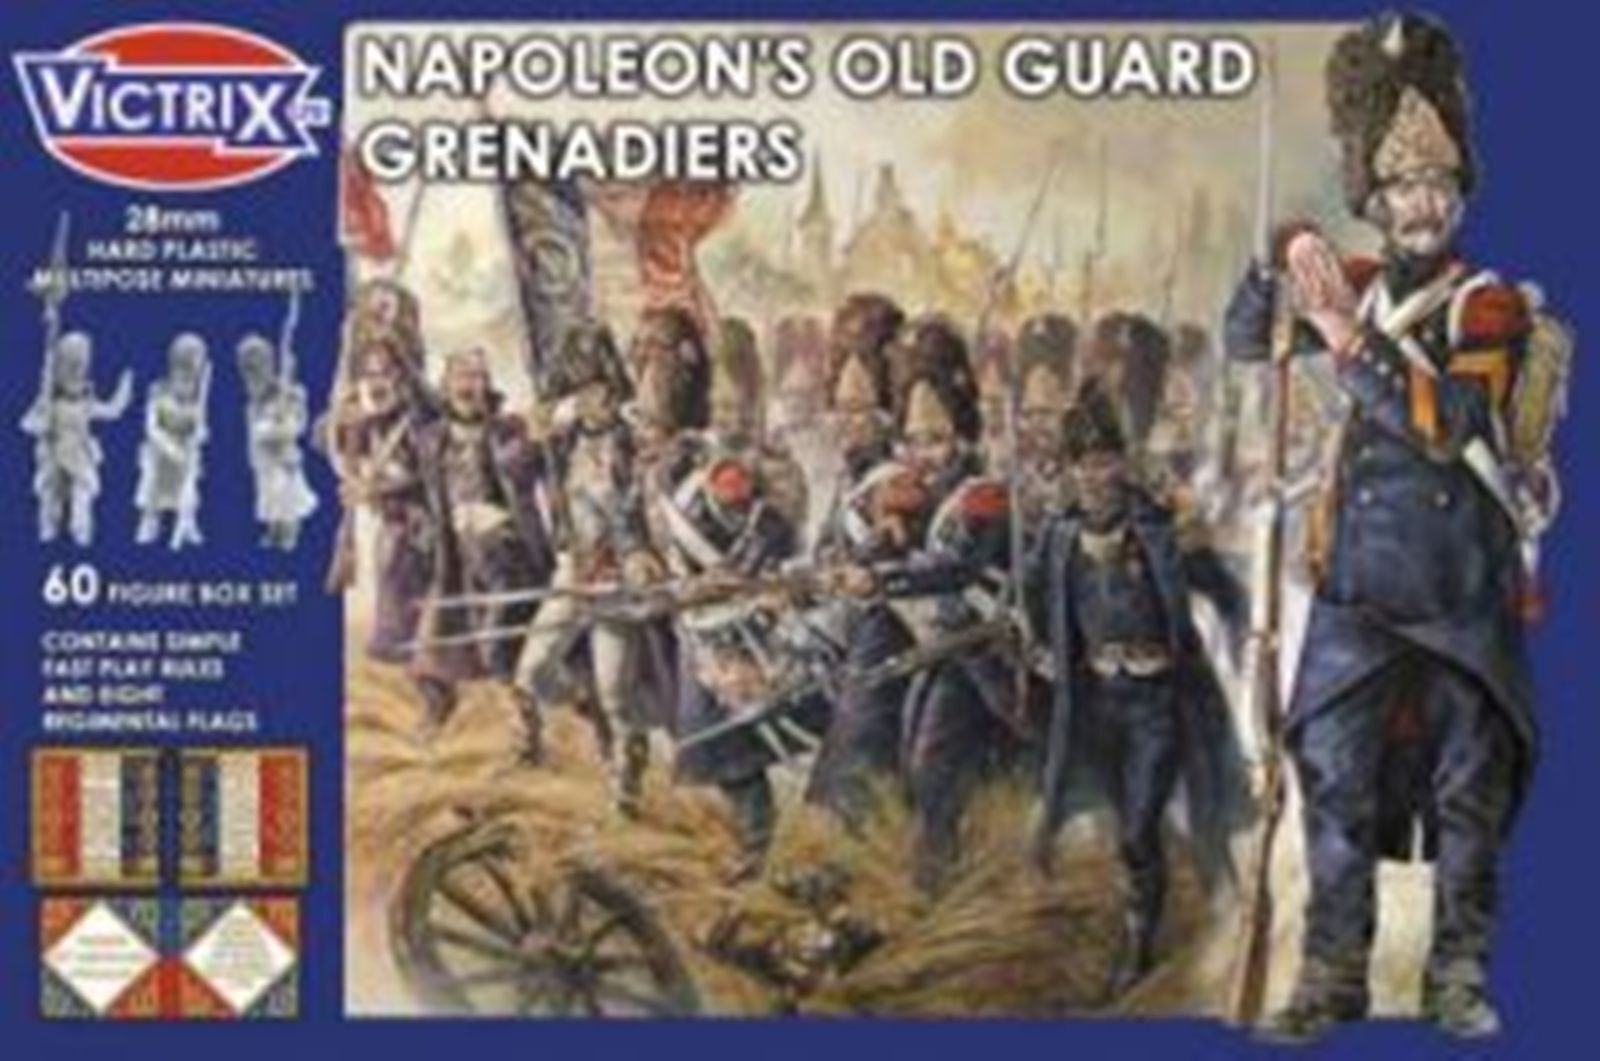 NEW VICTRIX MINIATURES NAPOLEON'S OLD GUARD GRENADIERS COLLECTIBLES GAME VX0009